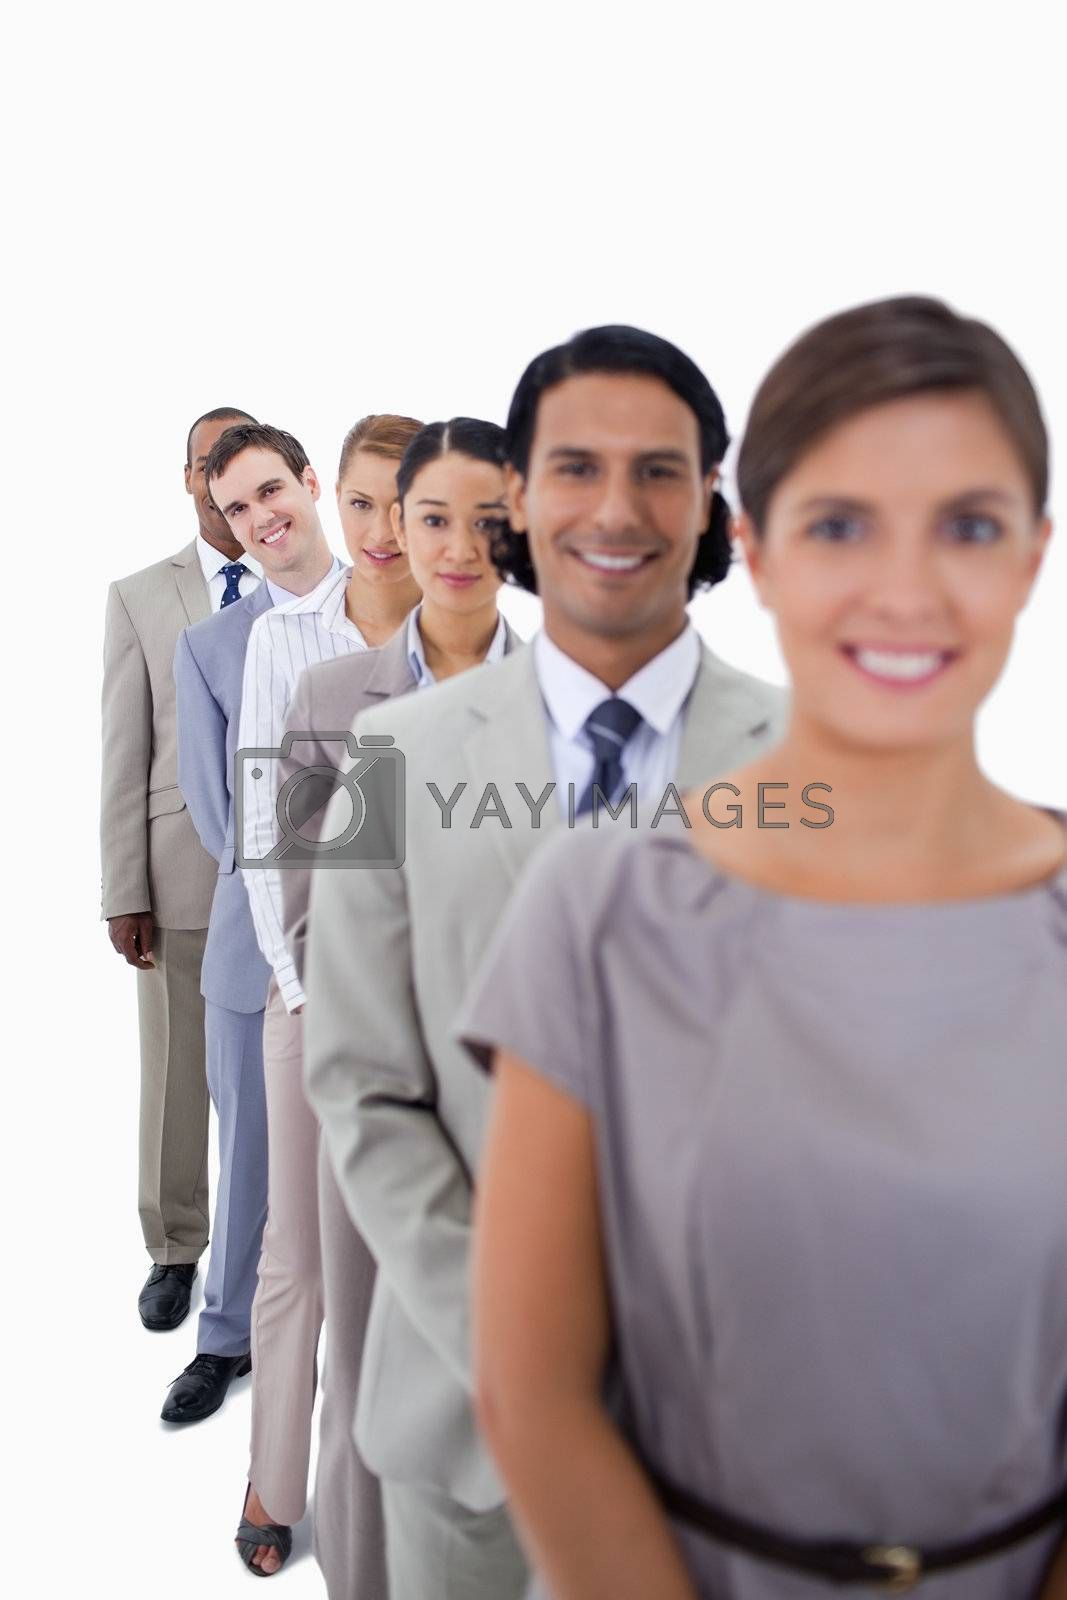 Close-up of workmates in single line smiling and looking straight with focus on the second man against white background